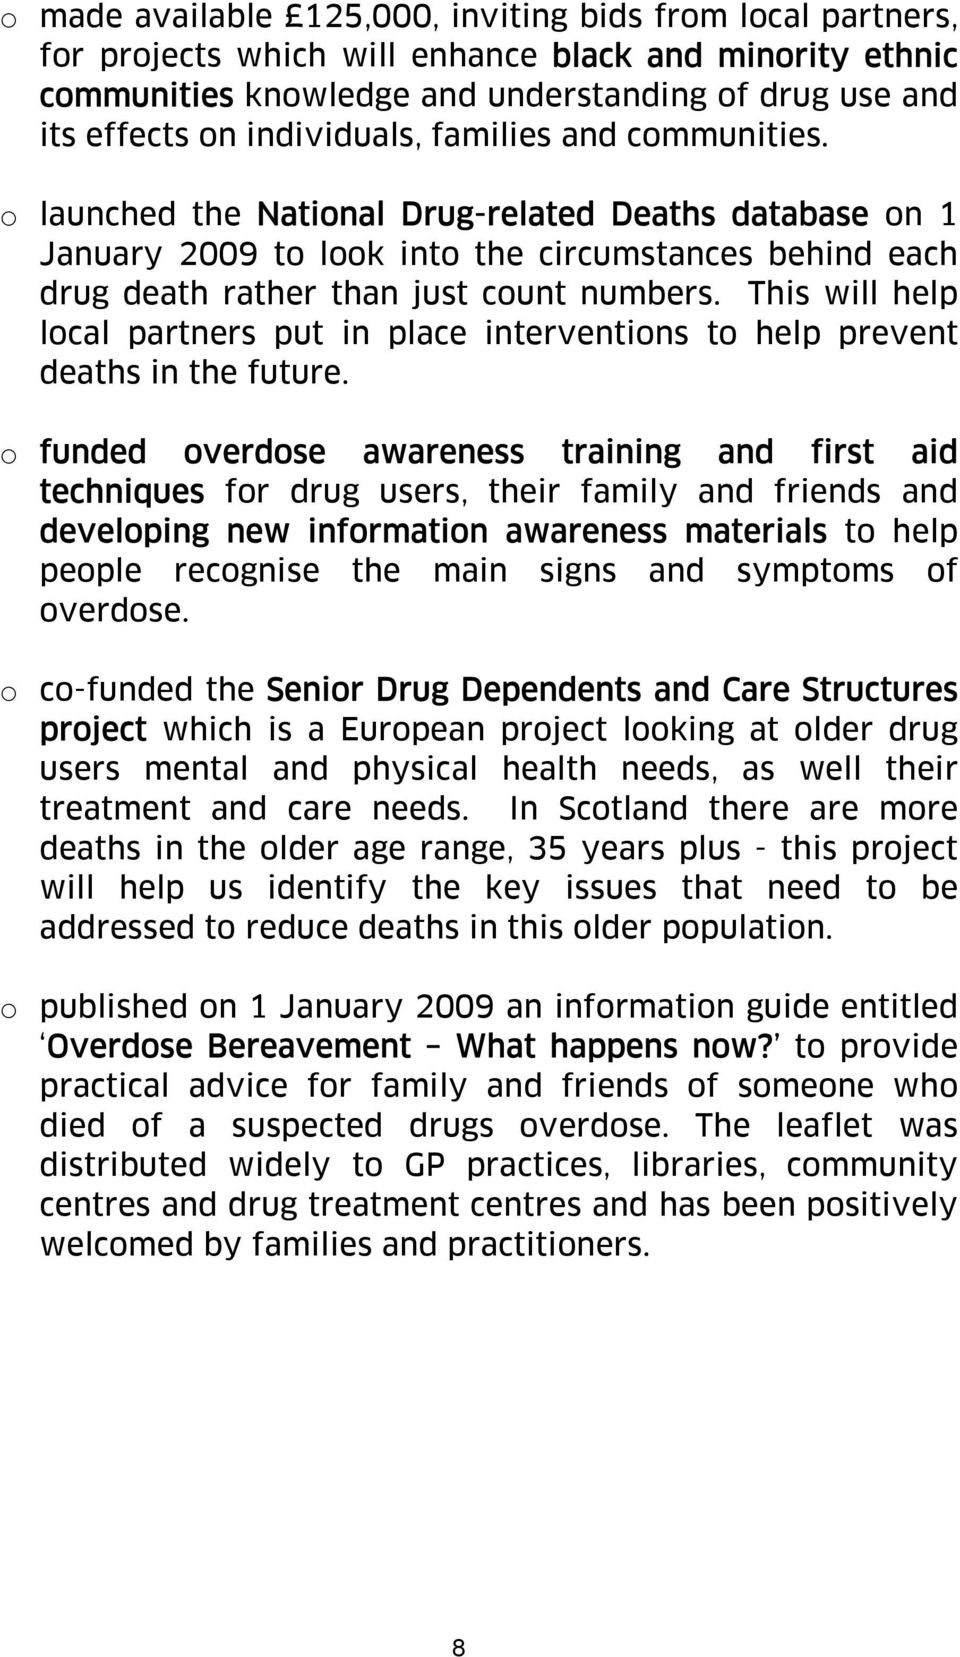 This will help local partners put in place interventions to help prevent deaths in the future.